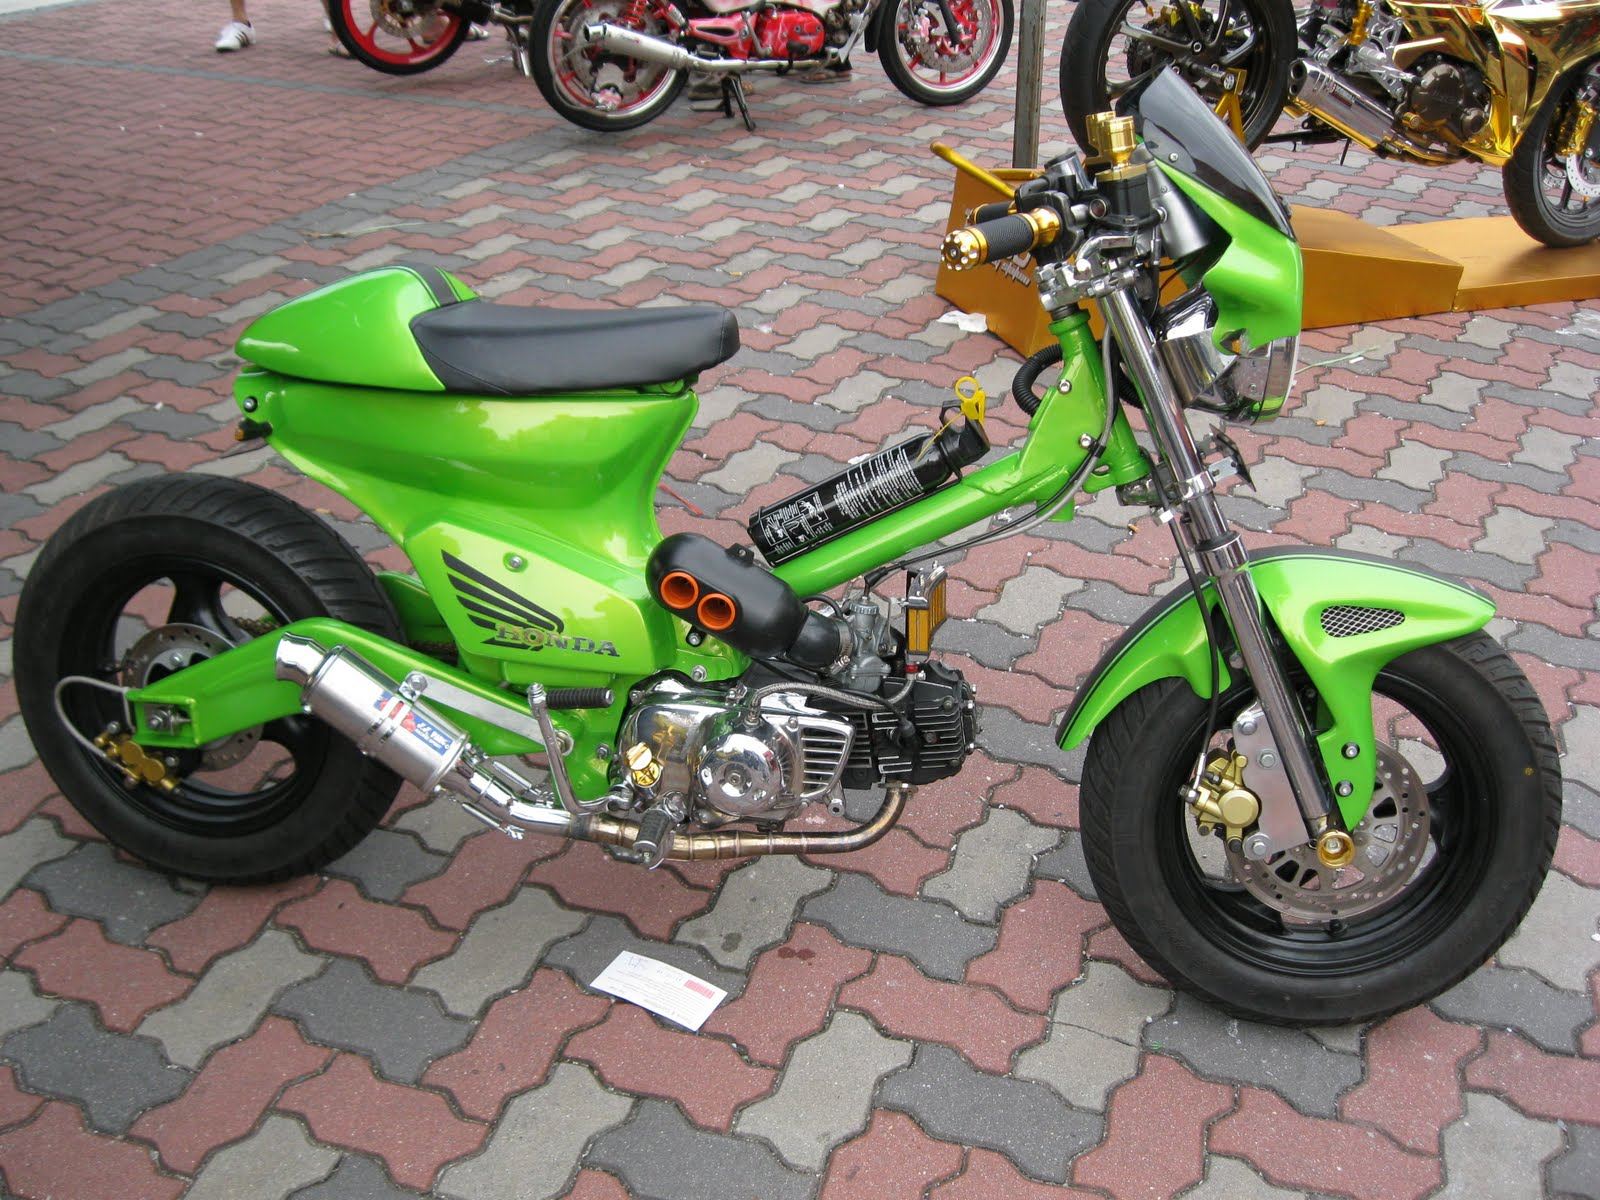 gl 125 modifikasi supermoto ceper metic cb100 oto trend modifikasi title=